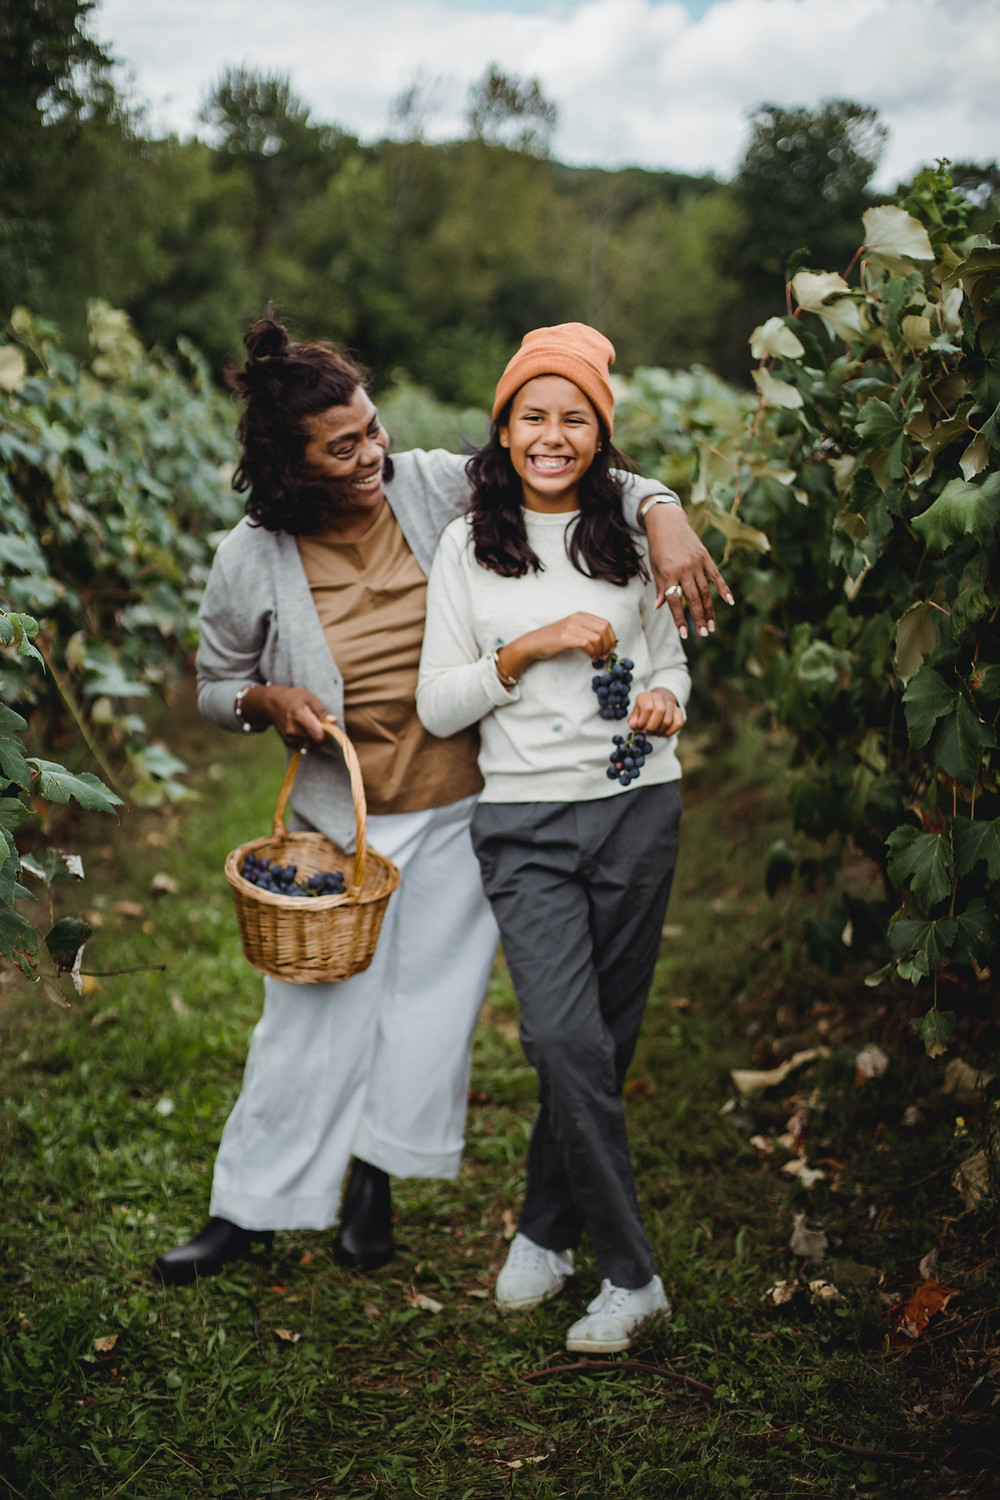 Mother and daughter in vineyard with grapes